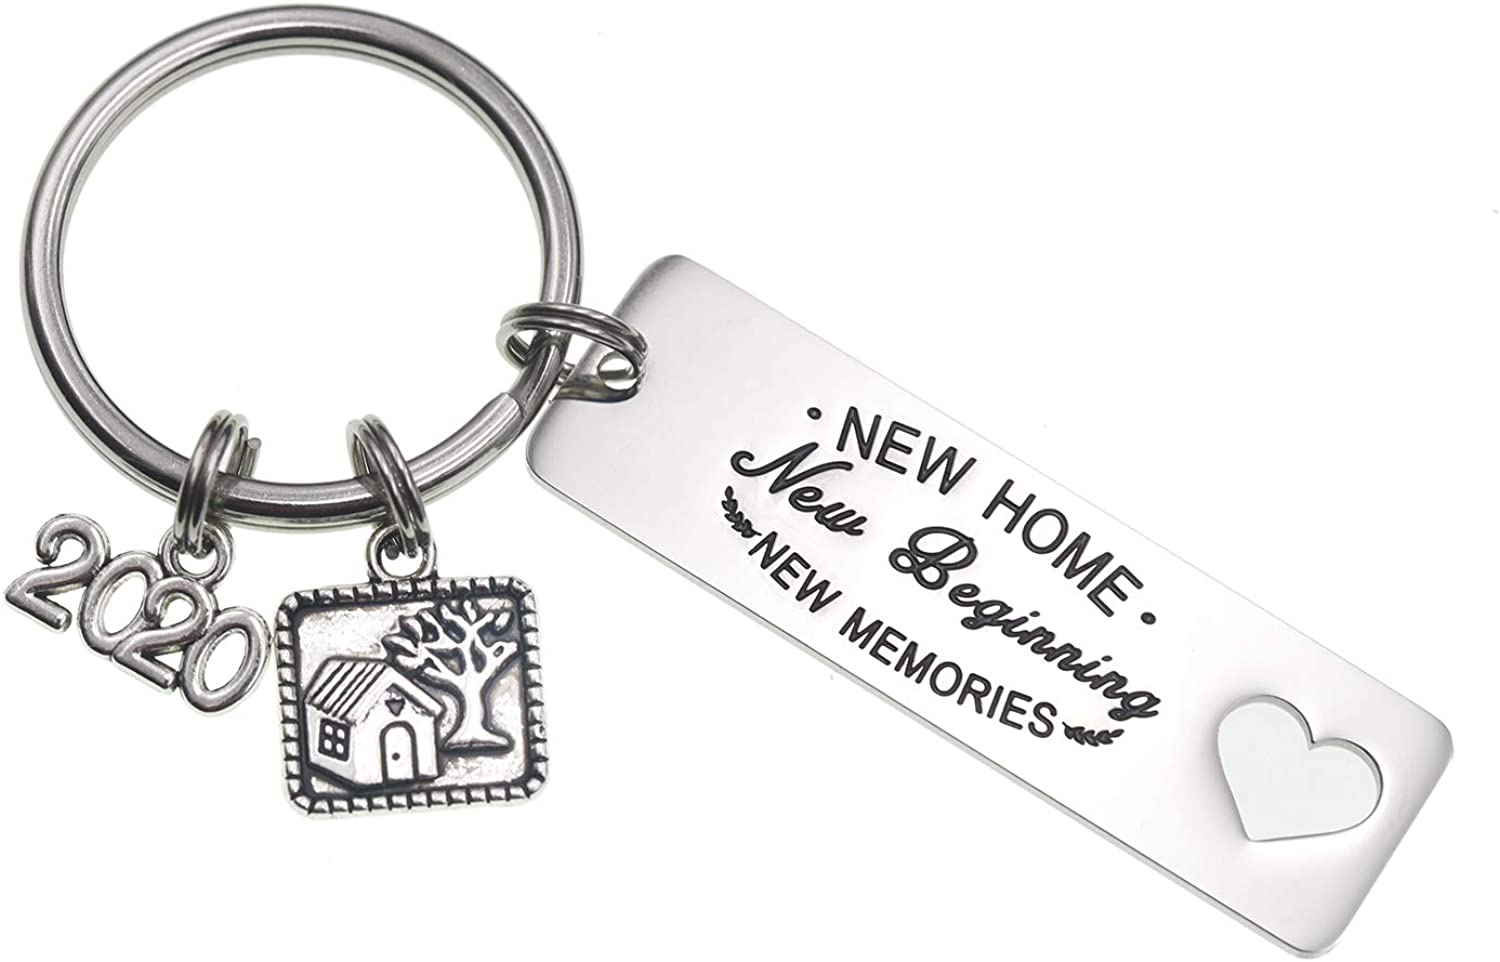 Housewarming Gifts New Home New Adventure 2020 Couples Keychain New Home Gift Ideas Husband Wife